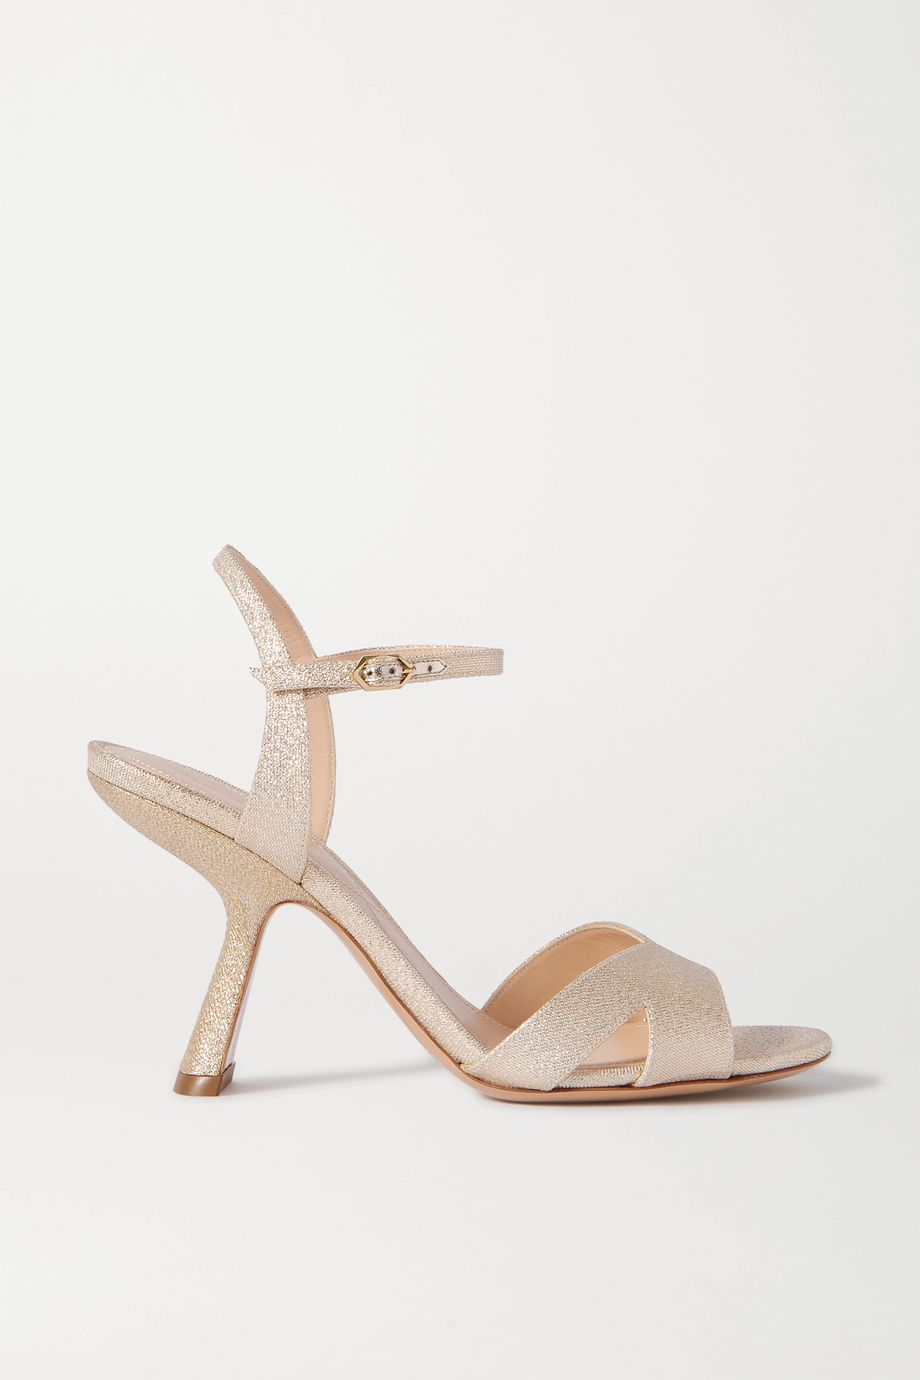 Nicholas Kirkwood Lexi metallic canvas sandals